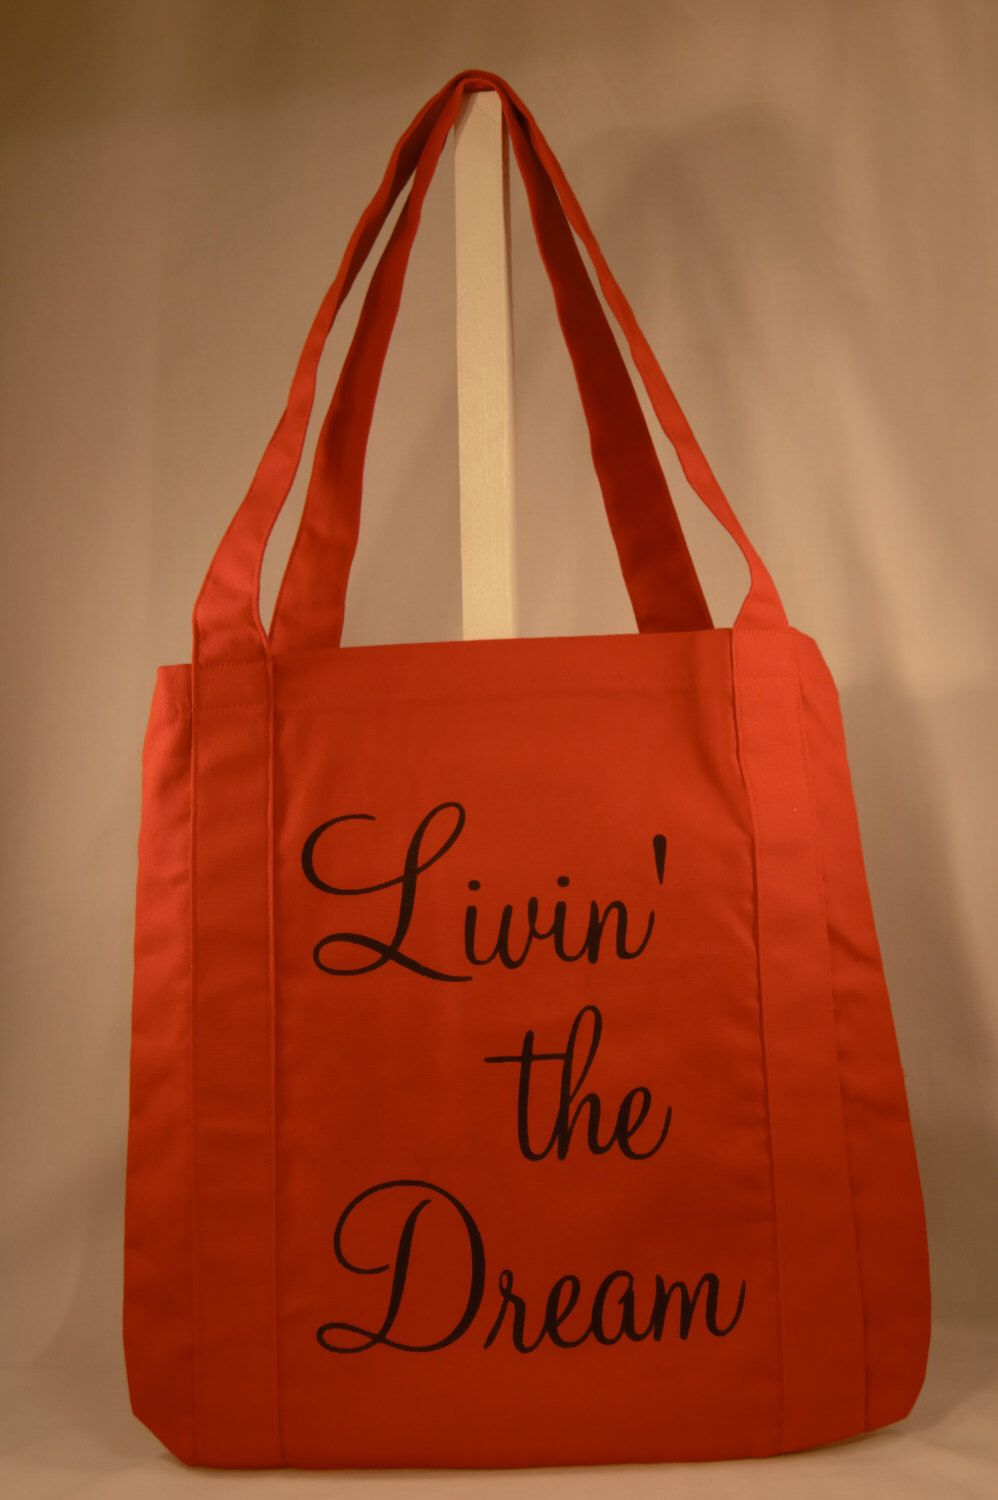 7a098eabee SAMPLE SALE - 50% off - Canvas Quote Tote Bag - 1 only available as ...